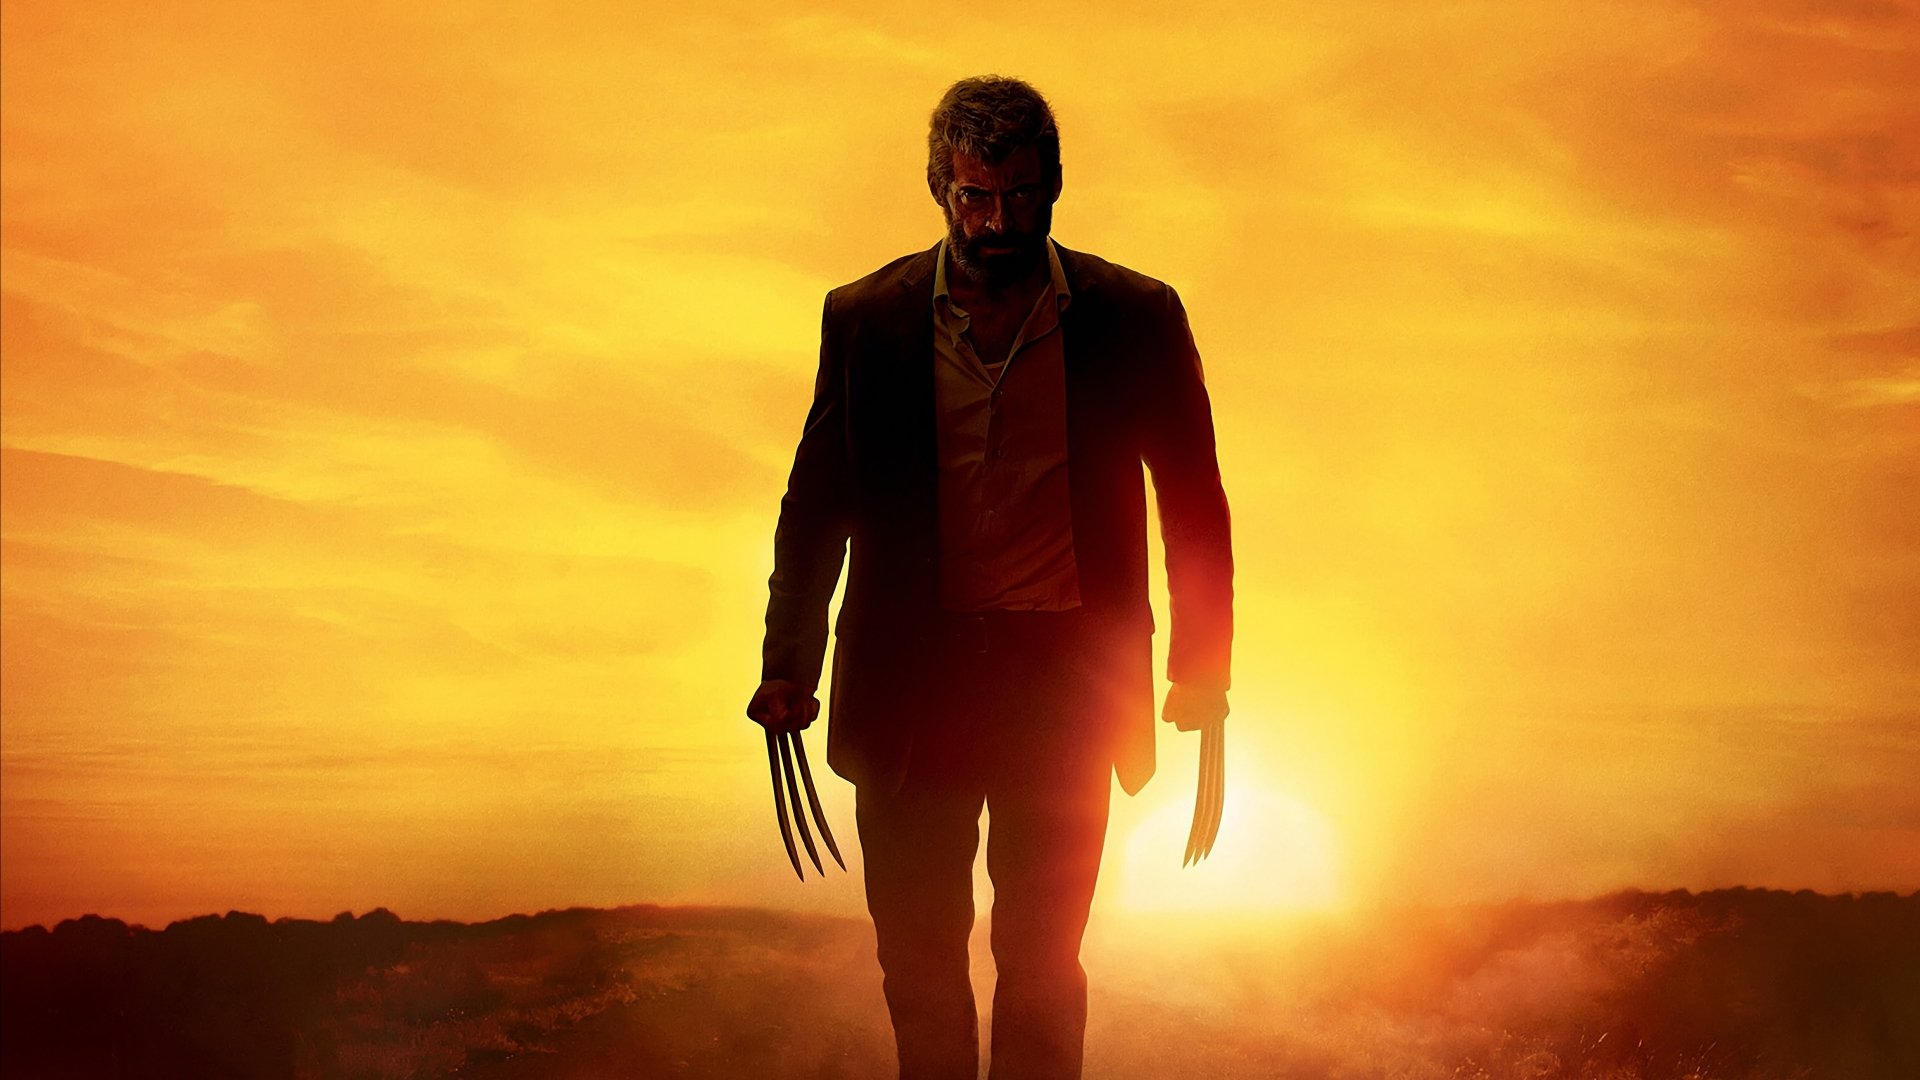 Movie - Logan  Logan (Movie) Wolverine Hugh Jackman Wallpaper